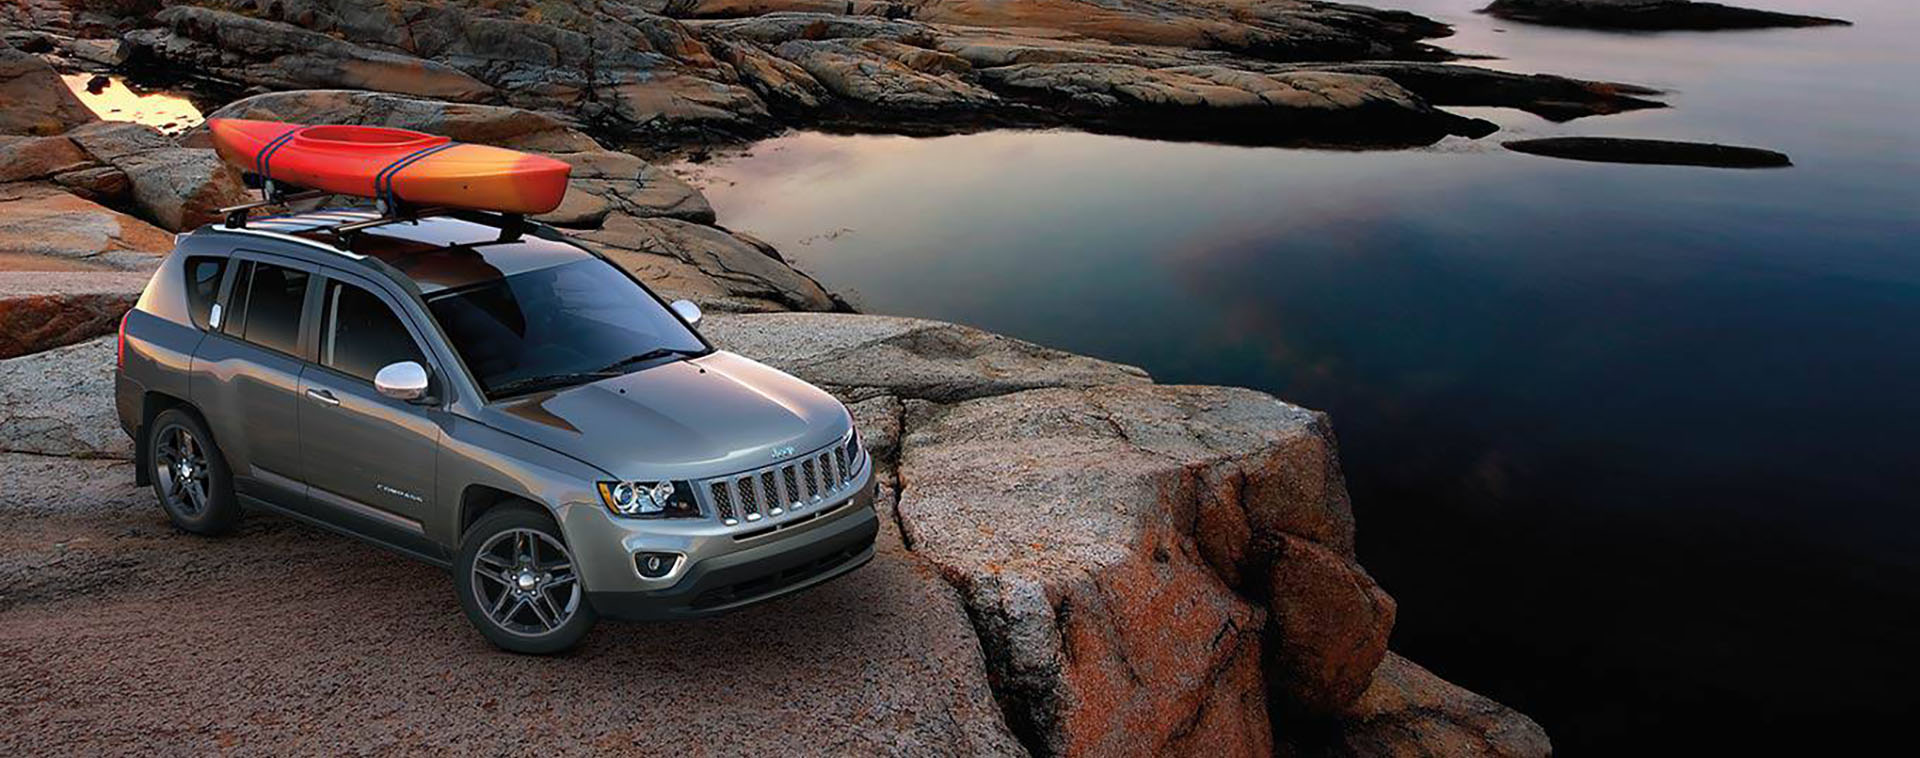 New Compass inventory at Quirk Chrysler Jeep Dodge Ram